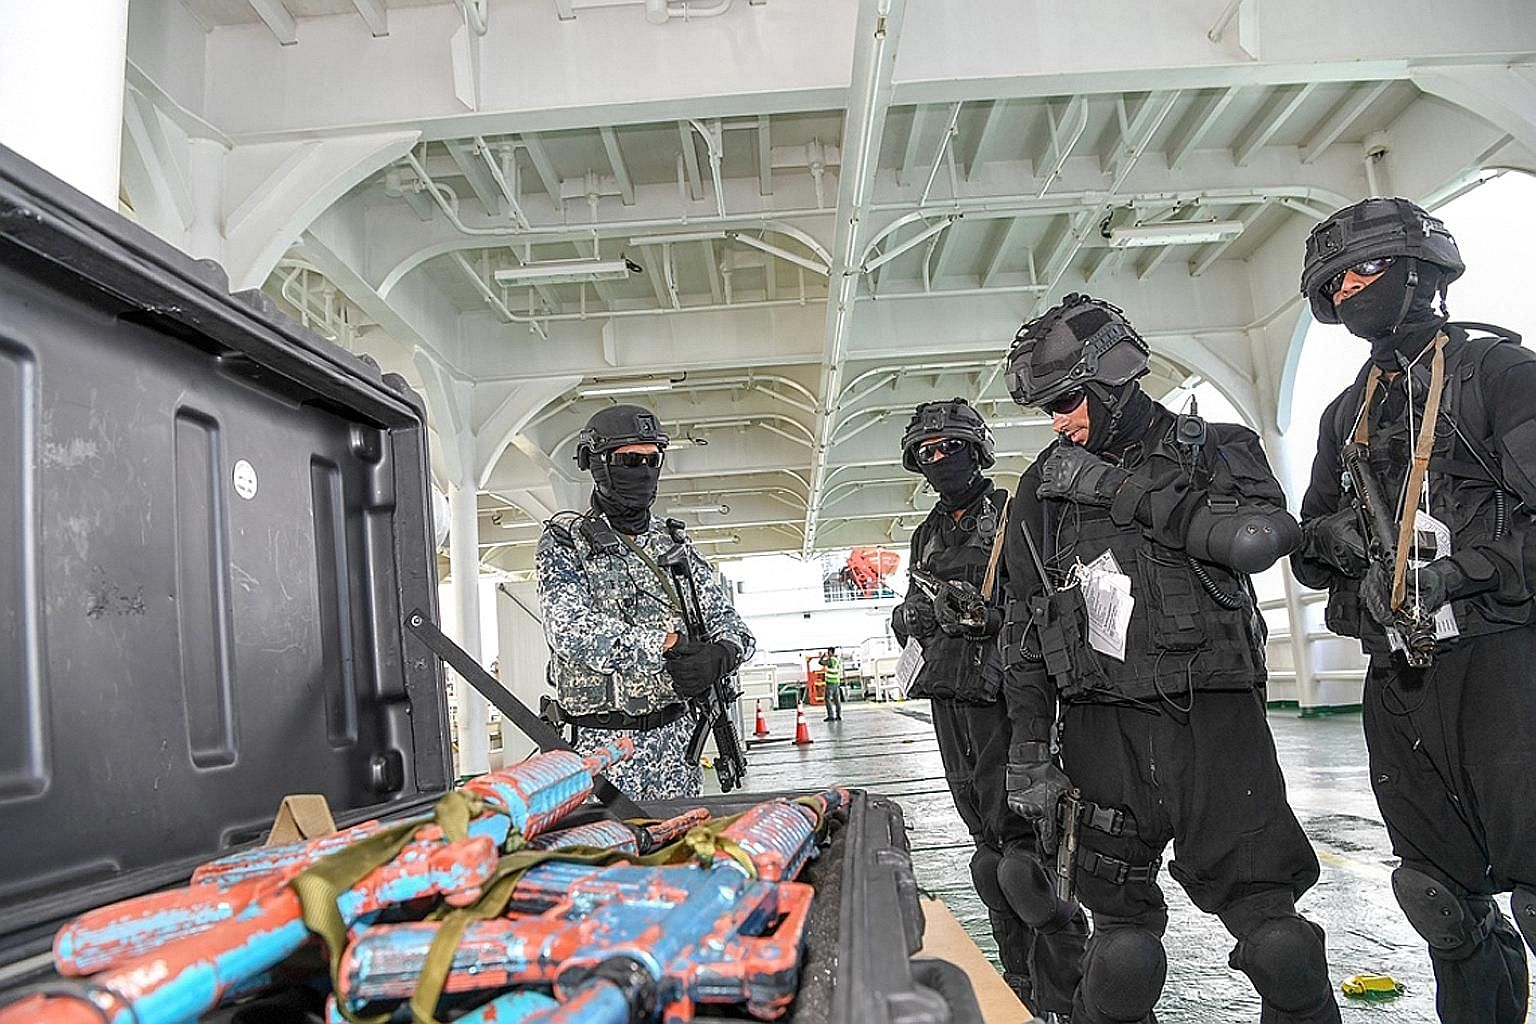 Boarding teams from Brunei, India, South Korea and Singapore simulating a search on a vessel of interest as part of the exercise.